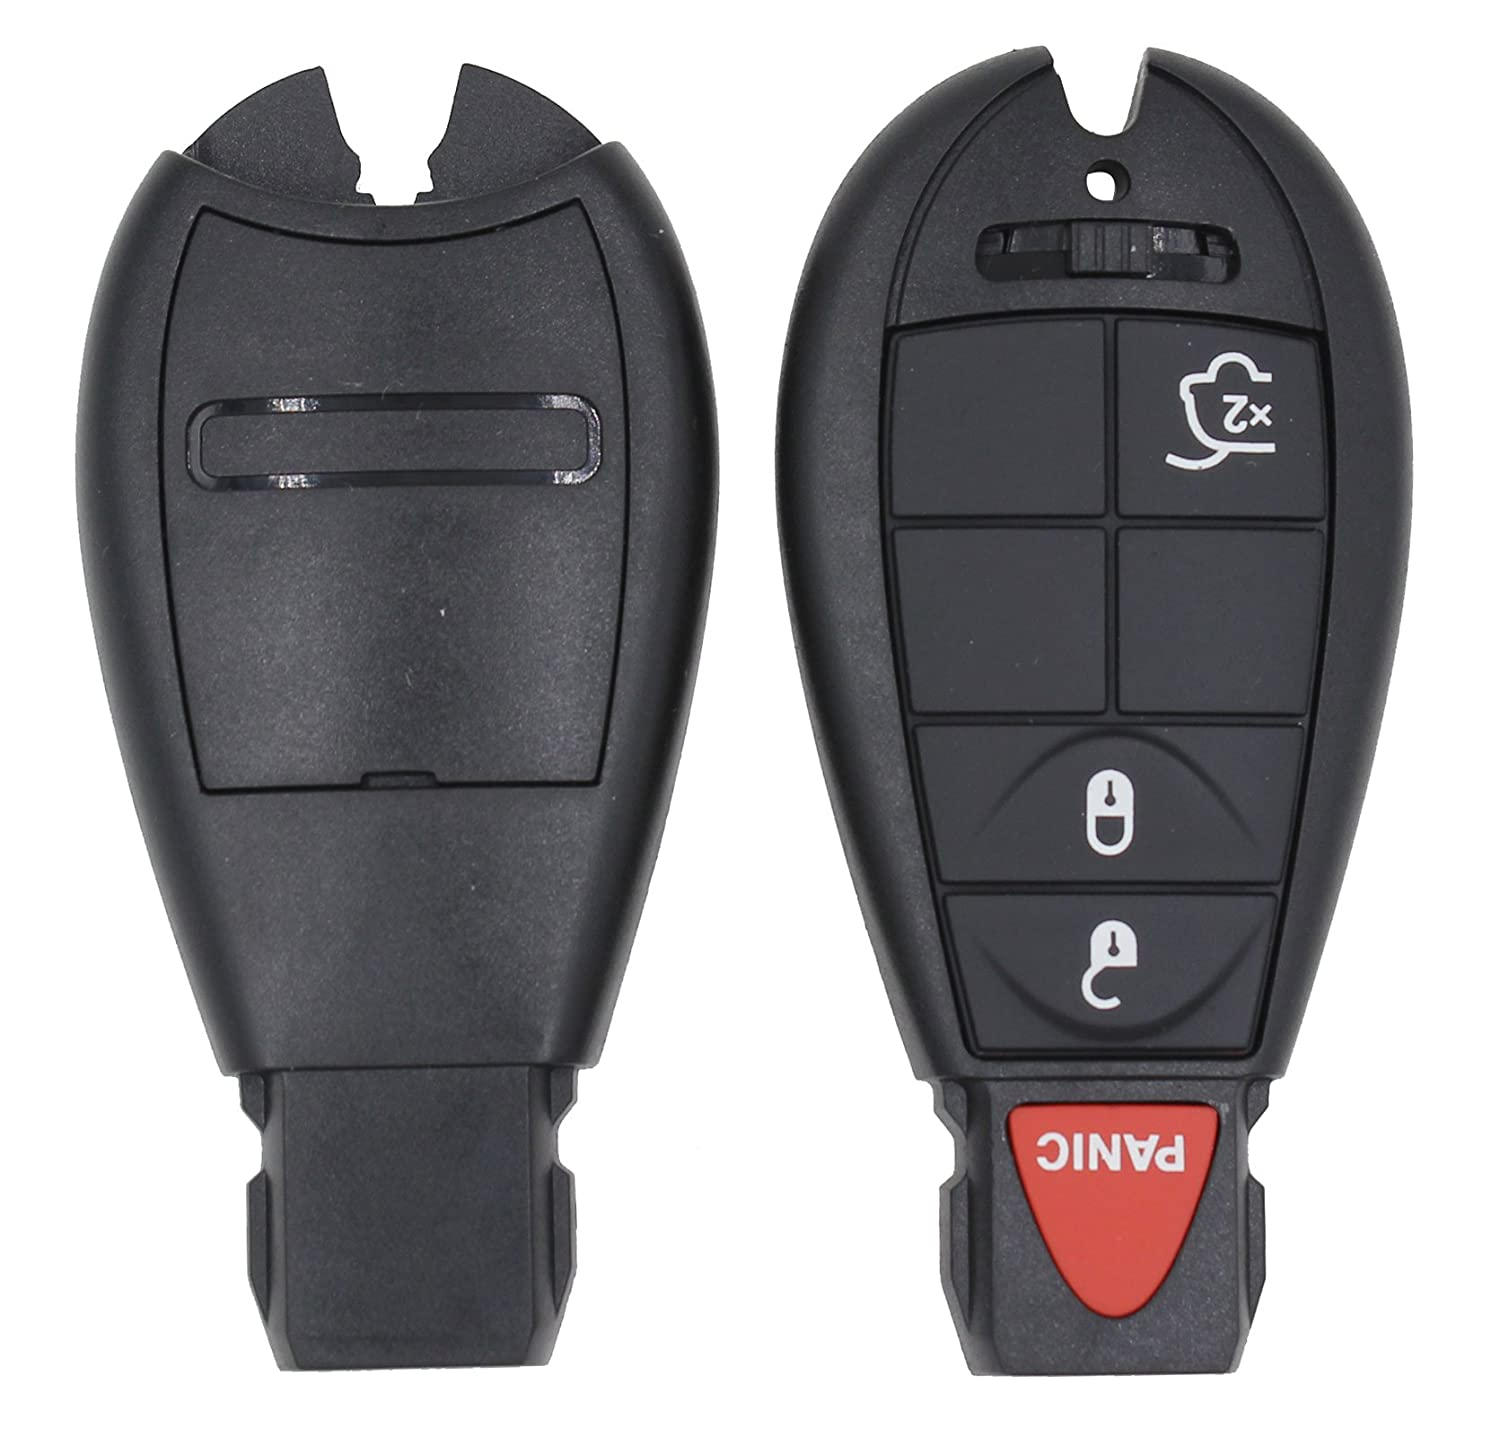 Remote Key 4 Buttons Shell Cover Smart per Chrysler Jeep Grand Cherokee Commander inserire Fob Lama di ricambio